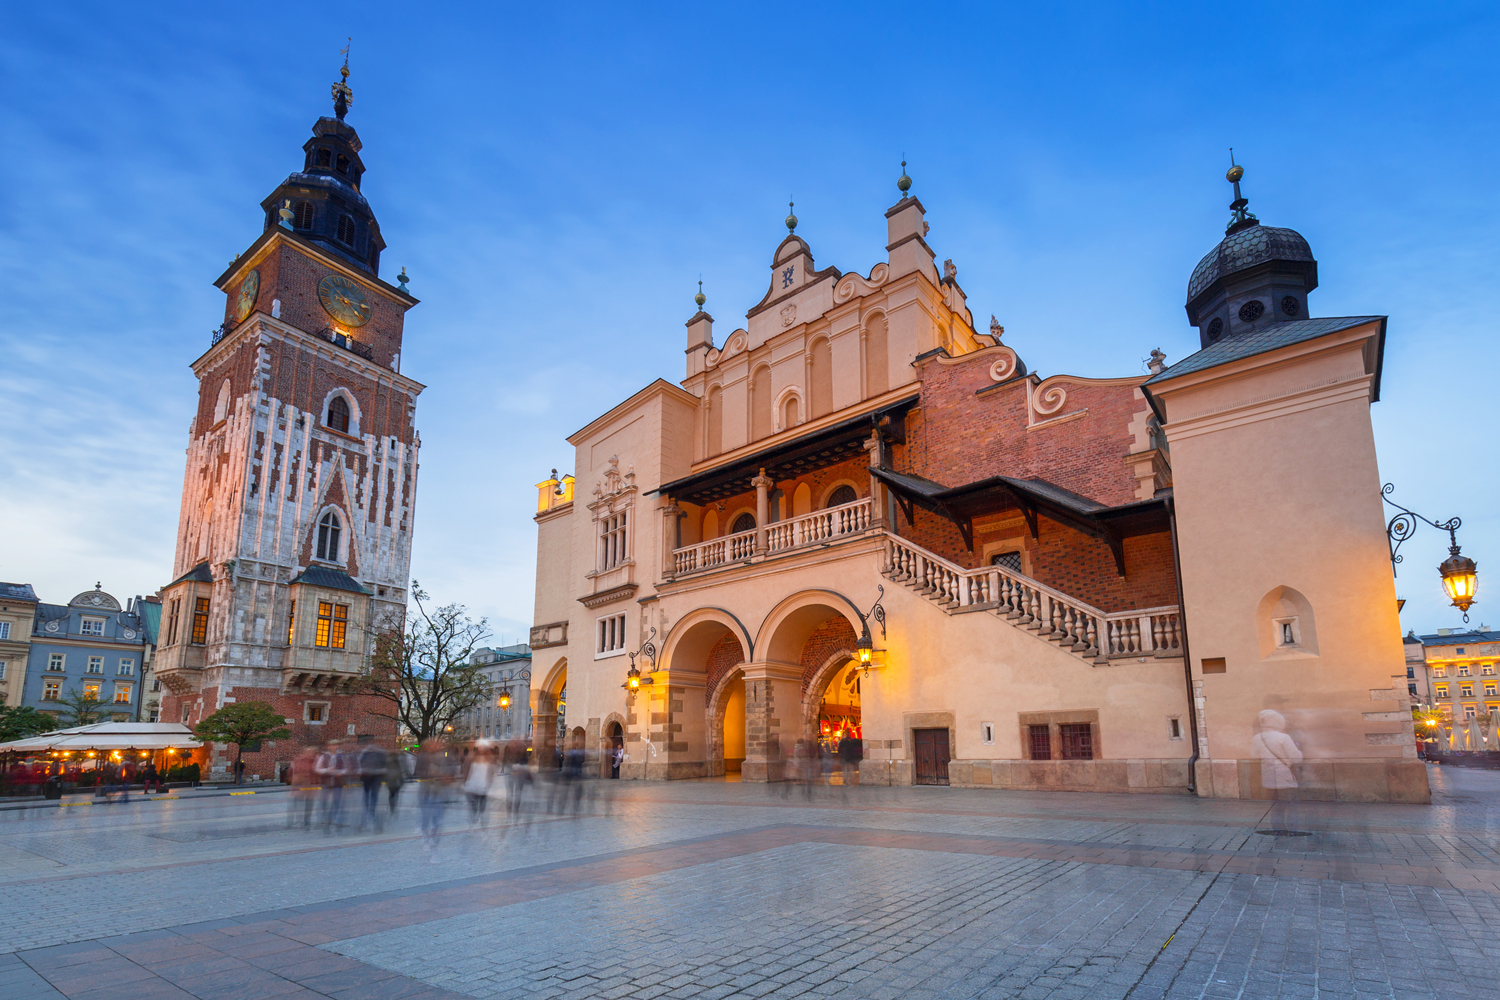 town-hall-tower-main-square-krakow-poland